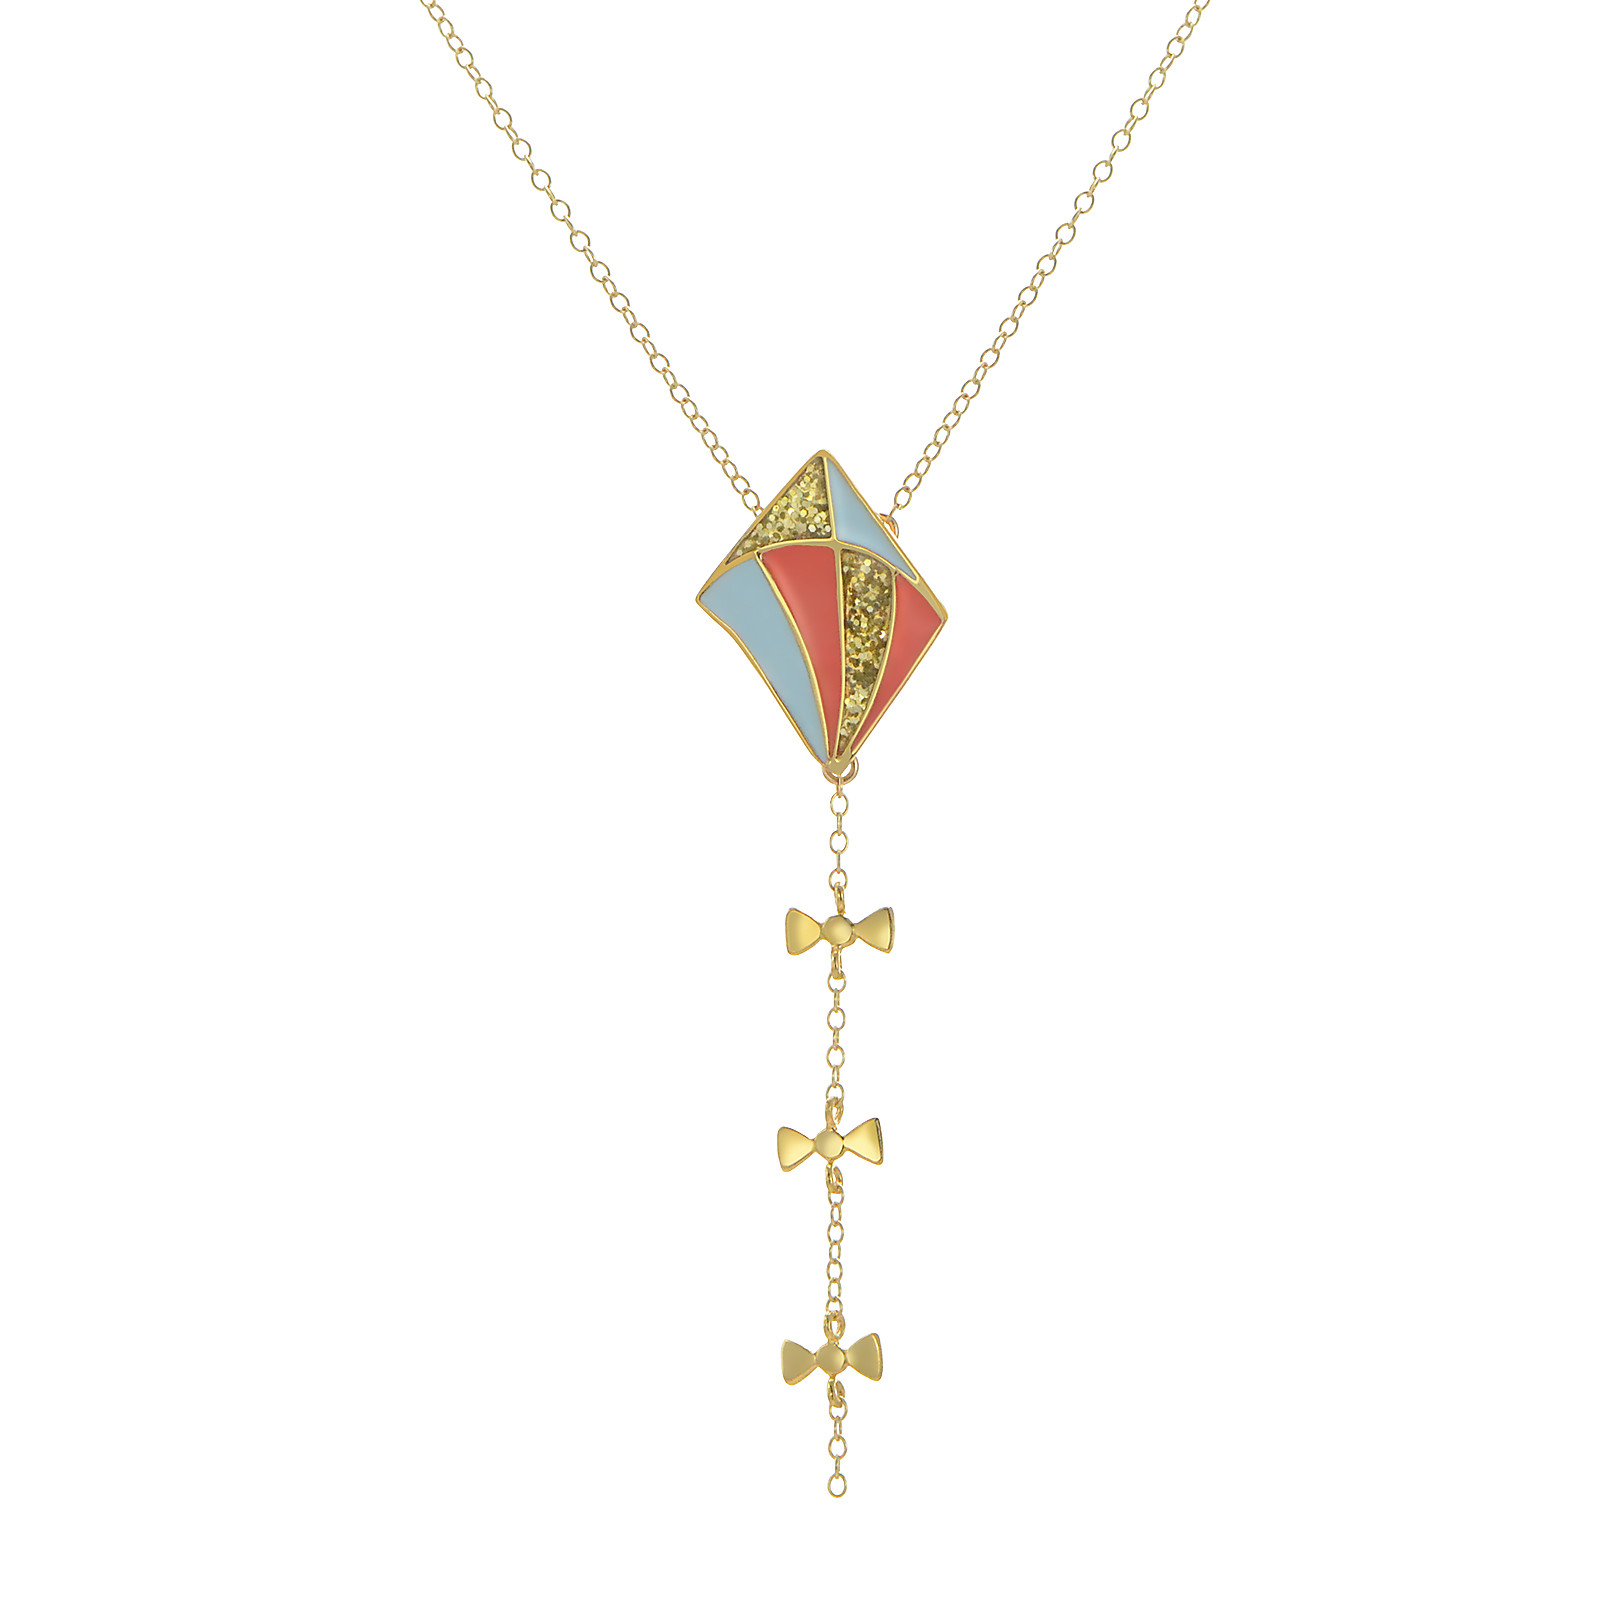 long kite necklace glitt pblue coral